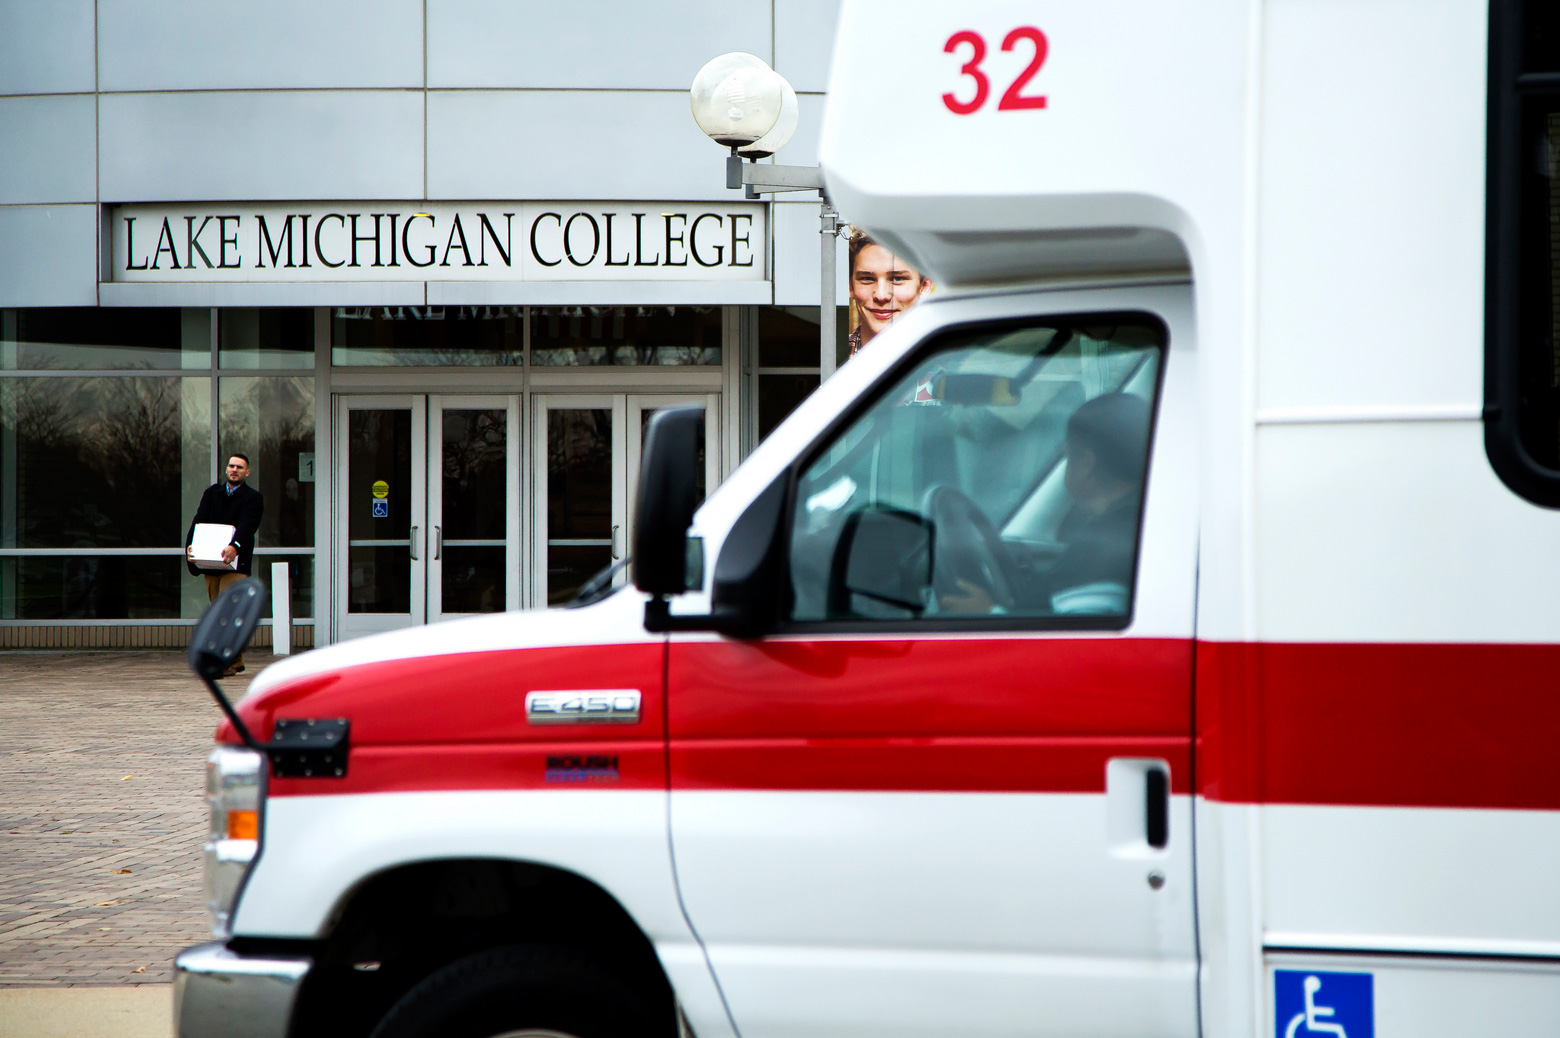 An ambulance waits outside the doors of a building